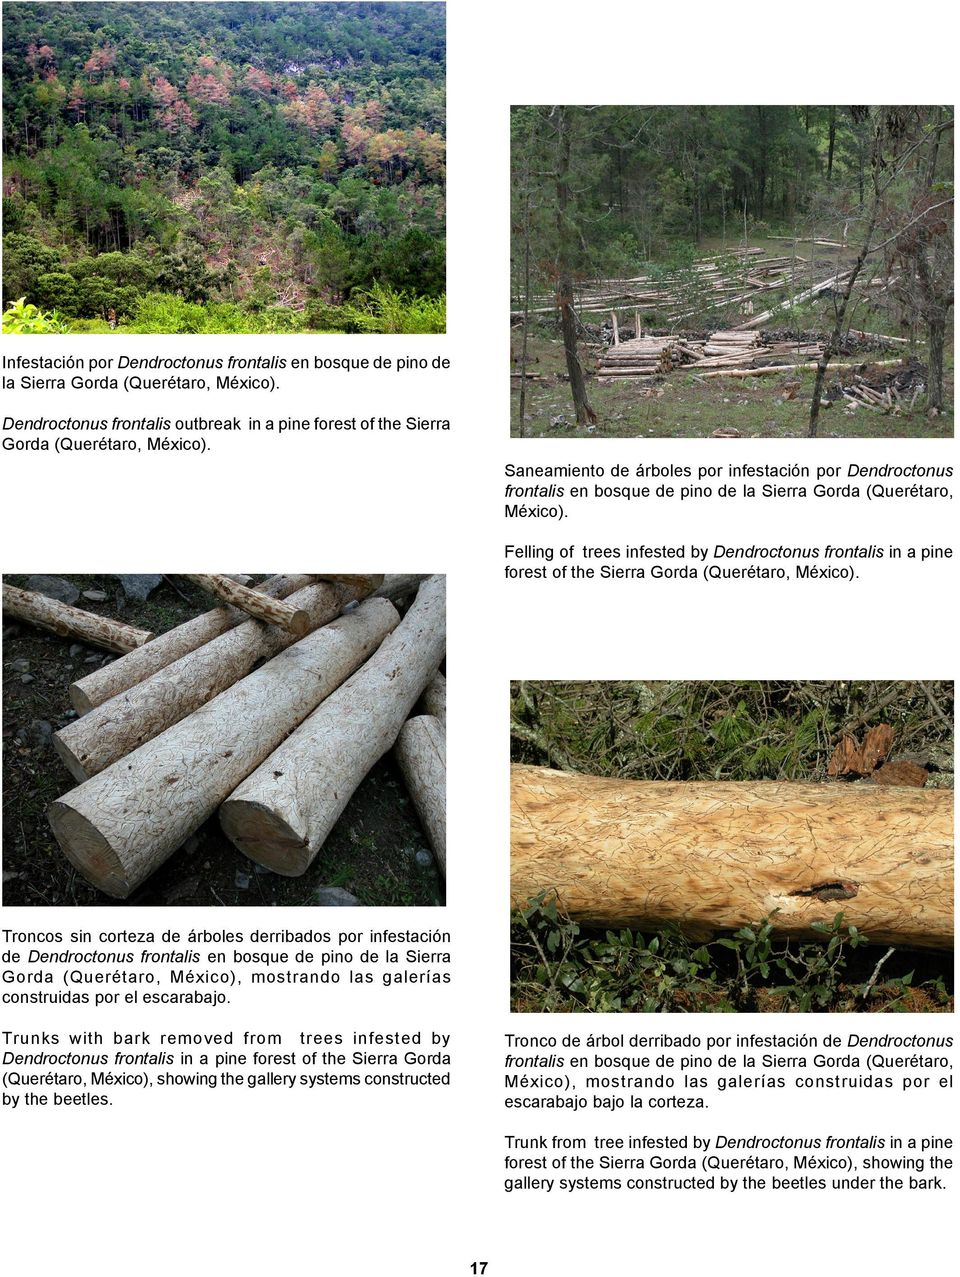 Felling of trees infested by Dendroctonus frontalis in a pine forest of the Sierra Gorda (Querétaro, México).